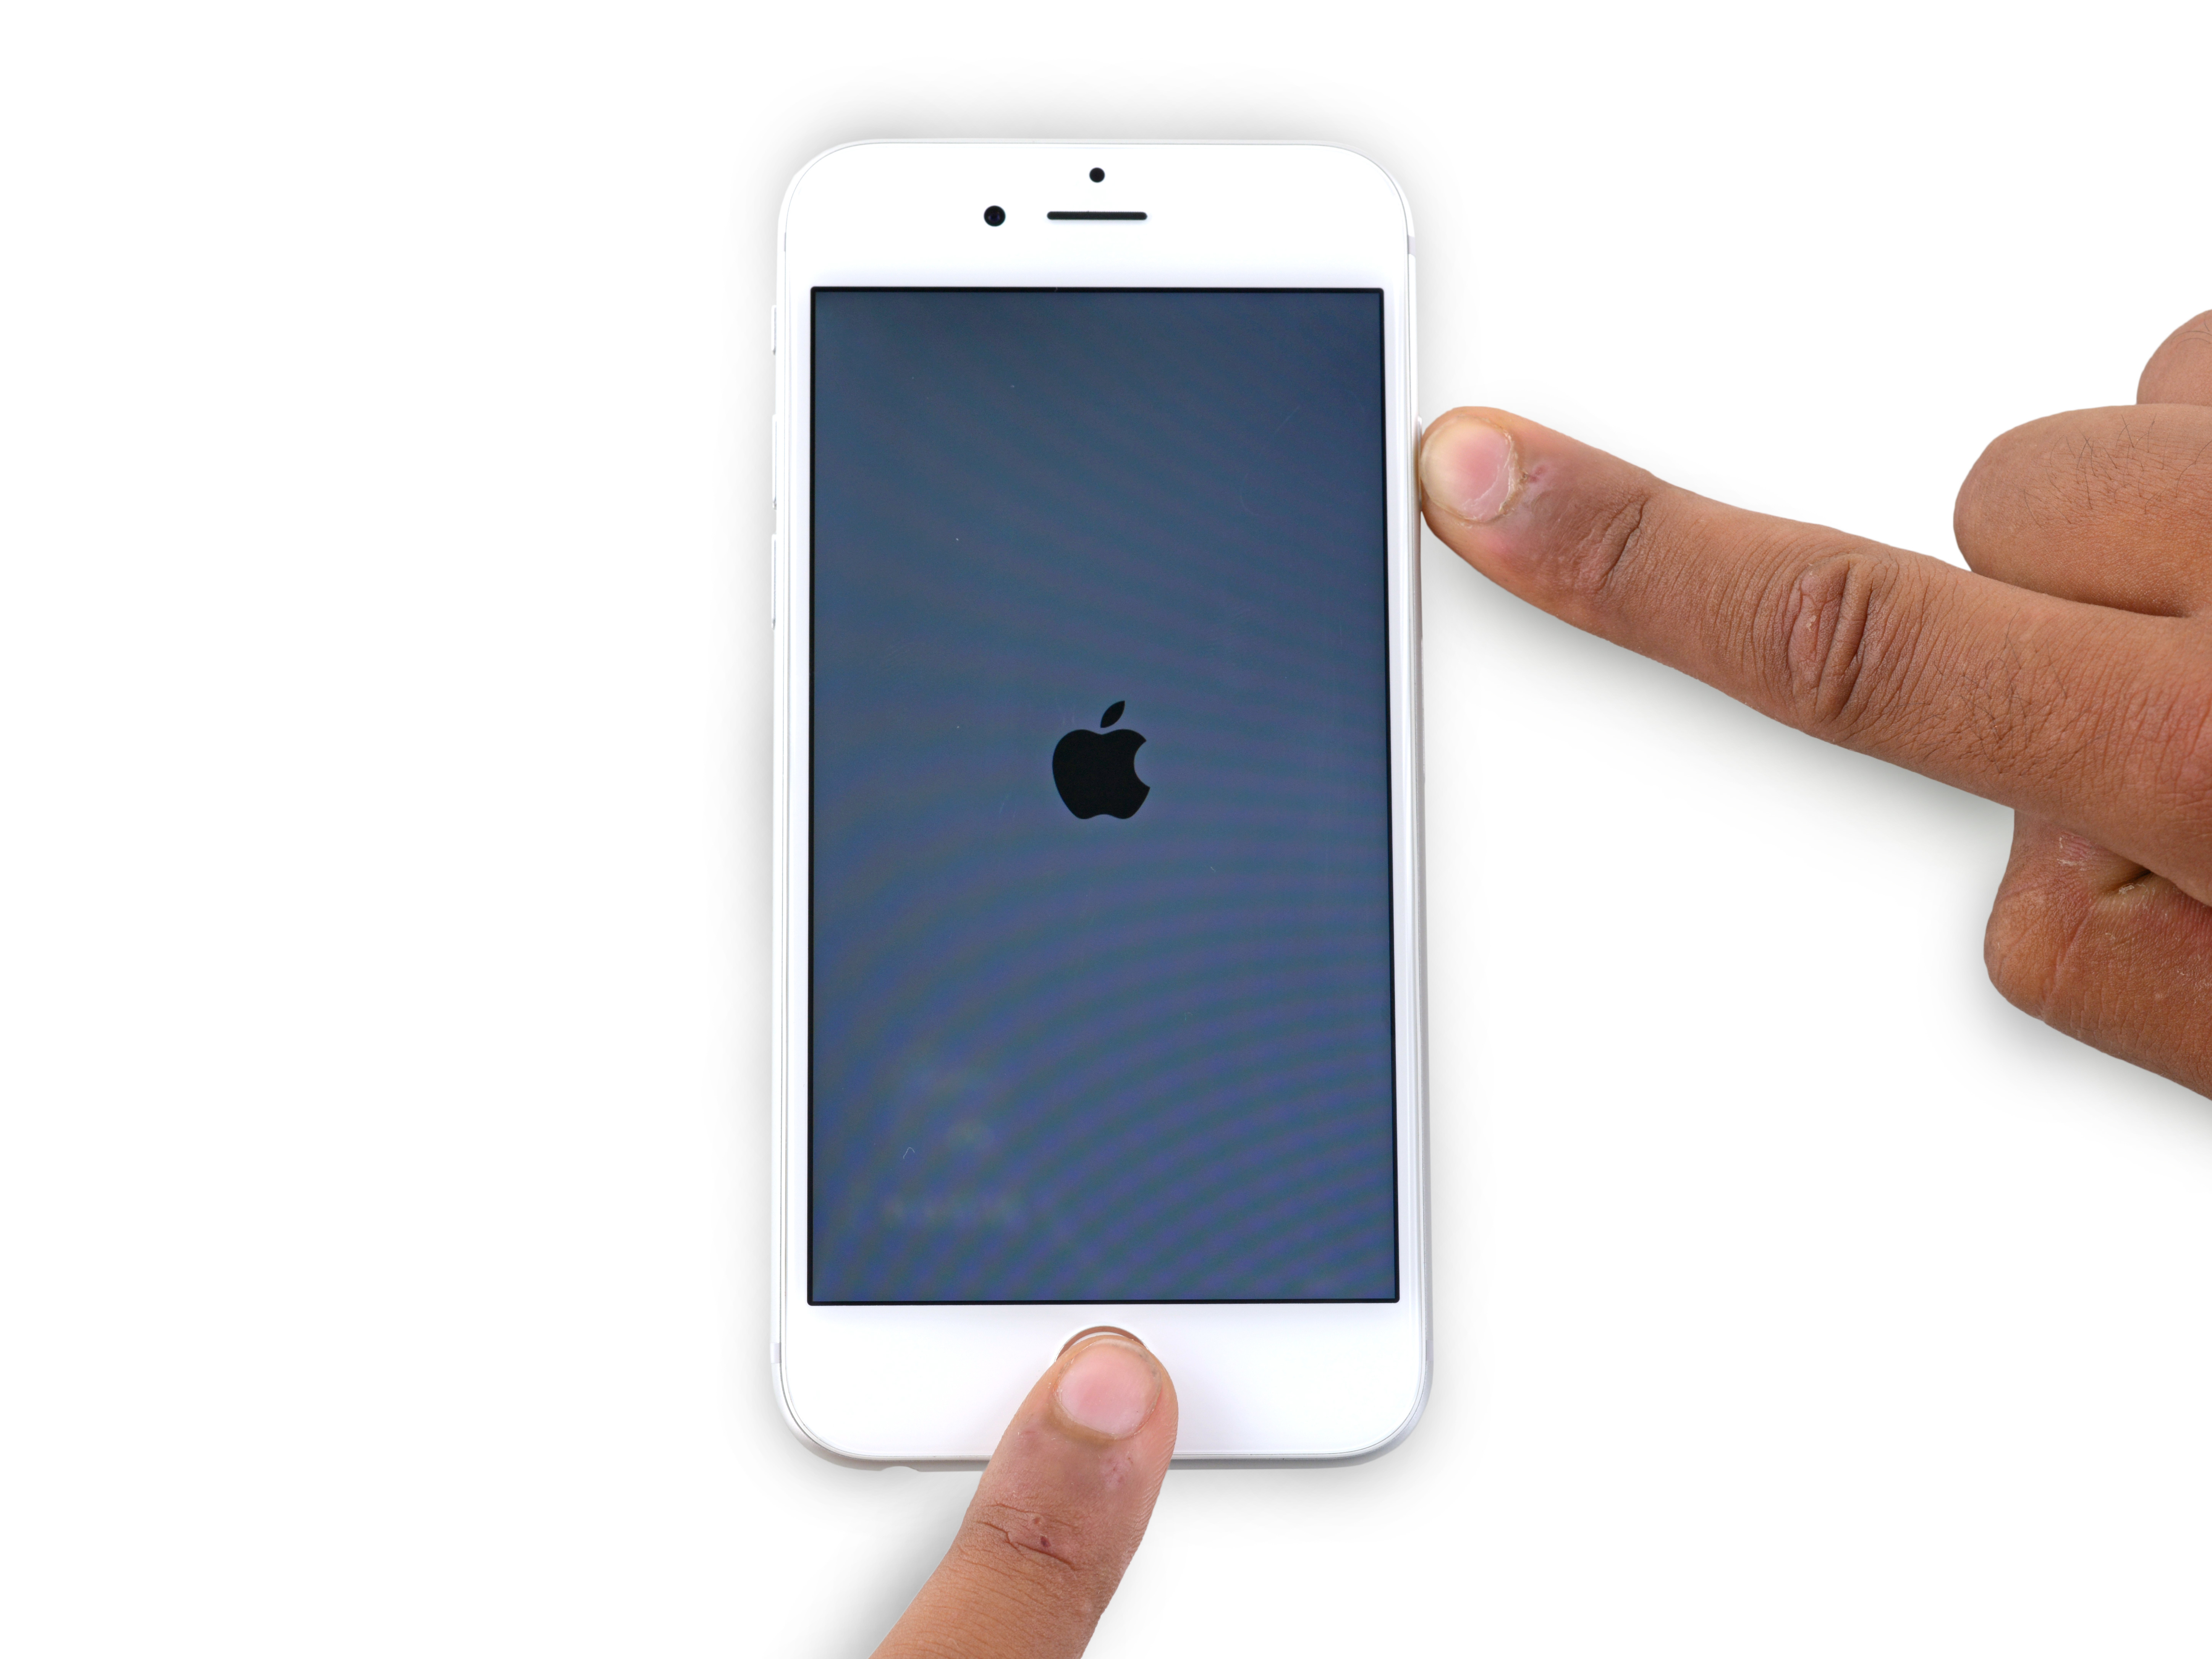 How to reboot the iPhone